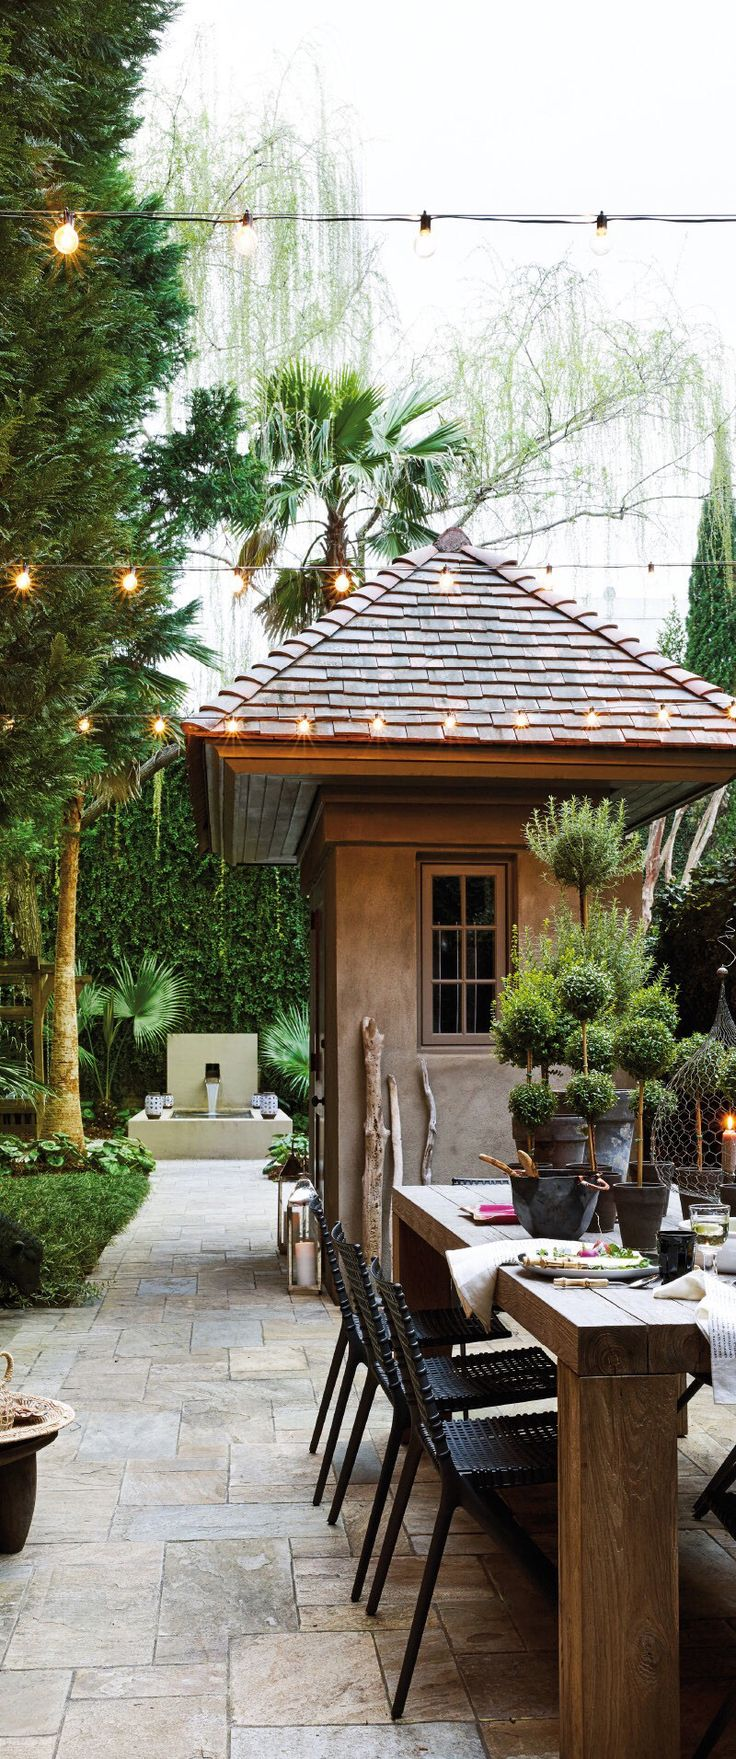 527 best Outdoor Room images on Pinterest | Backyard patio, Outside Backyard Options Other Than Gr on travel options, kitchen options, food options, lighting options, walkway options, roof options, business options, basement options, wall options, grass options,